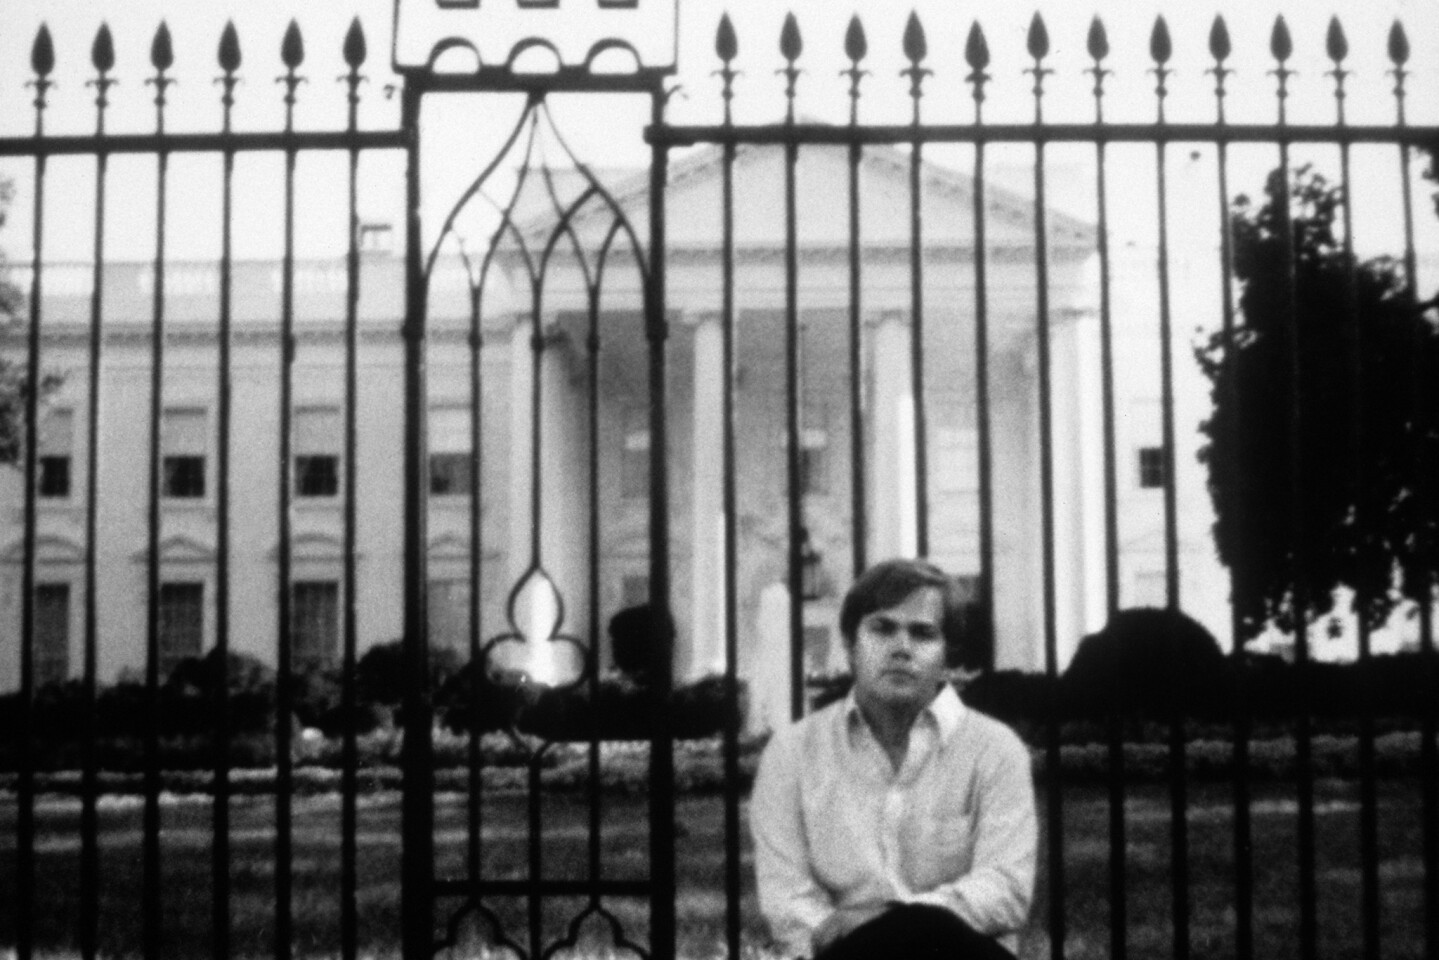 Picture taken in front of the White House of John Hinckley Jr., who attempted to assassinate President Reagan in Washington on March 30, 1981, as the culmination of an effort to impress actress Jodie Foster. He was found not guilty by reason of insanity and has remained under institutional psychiatric care since.